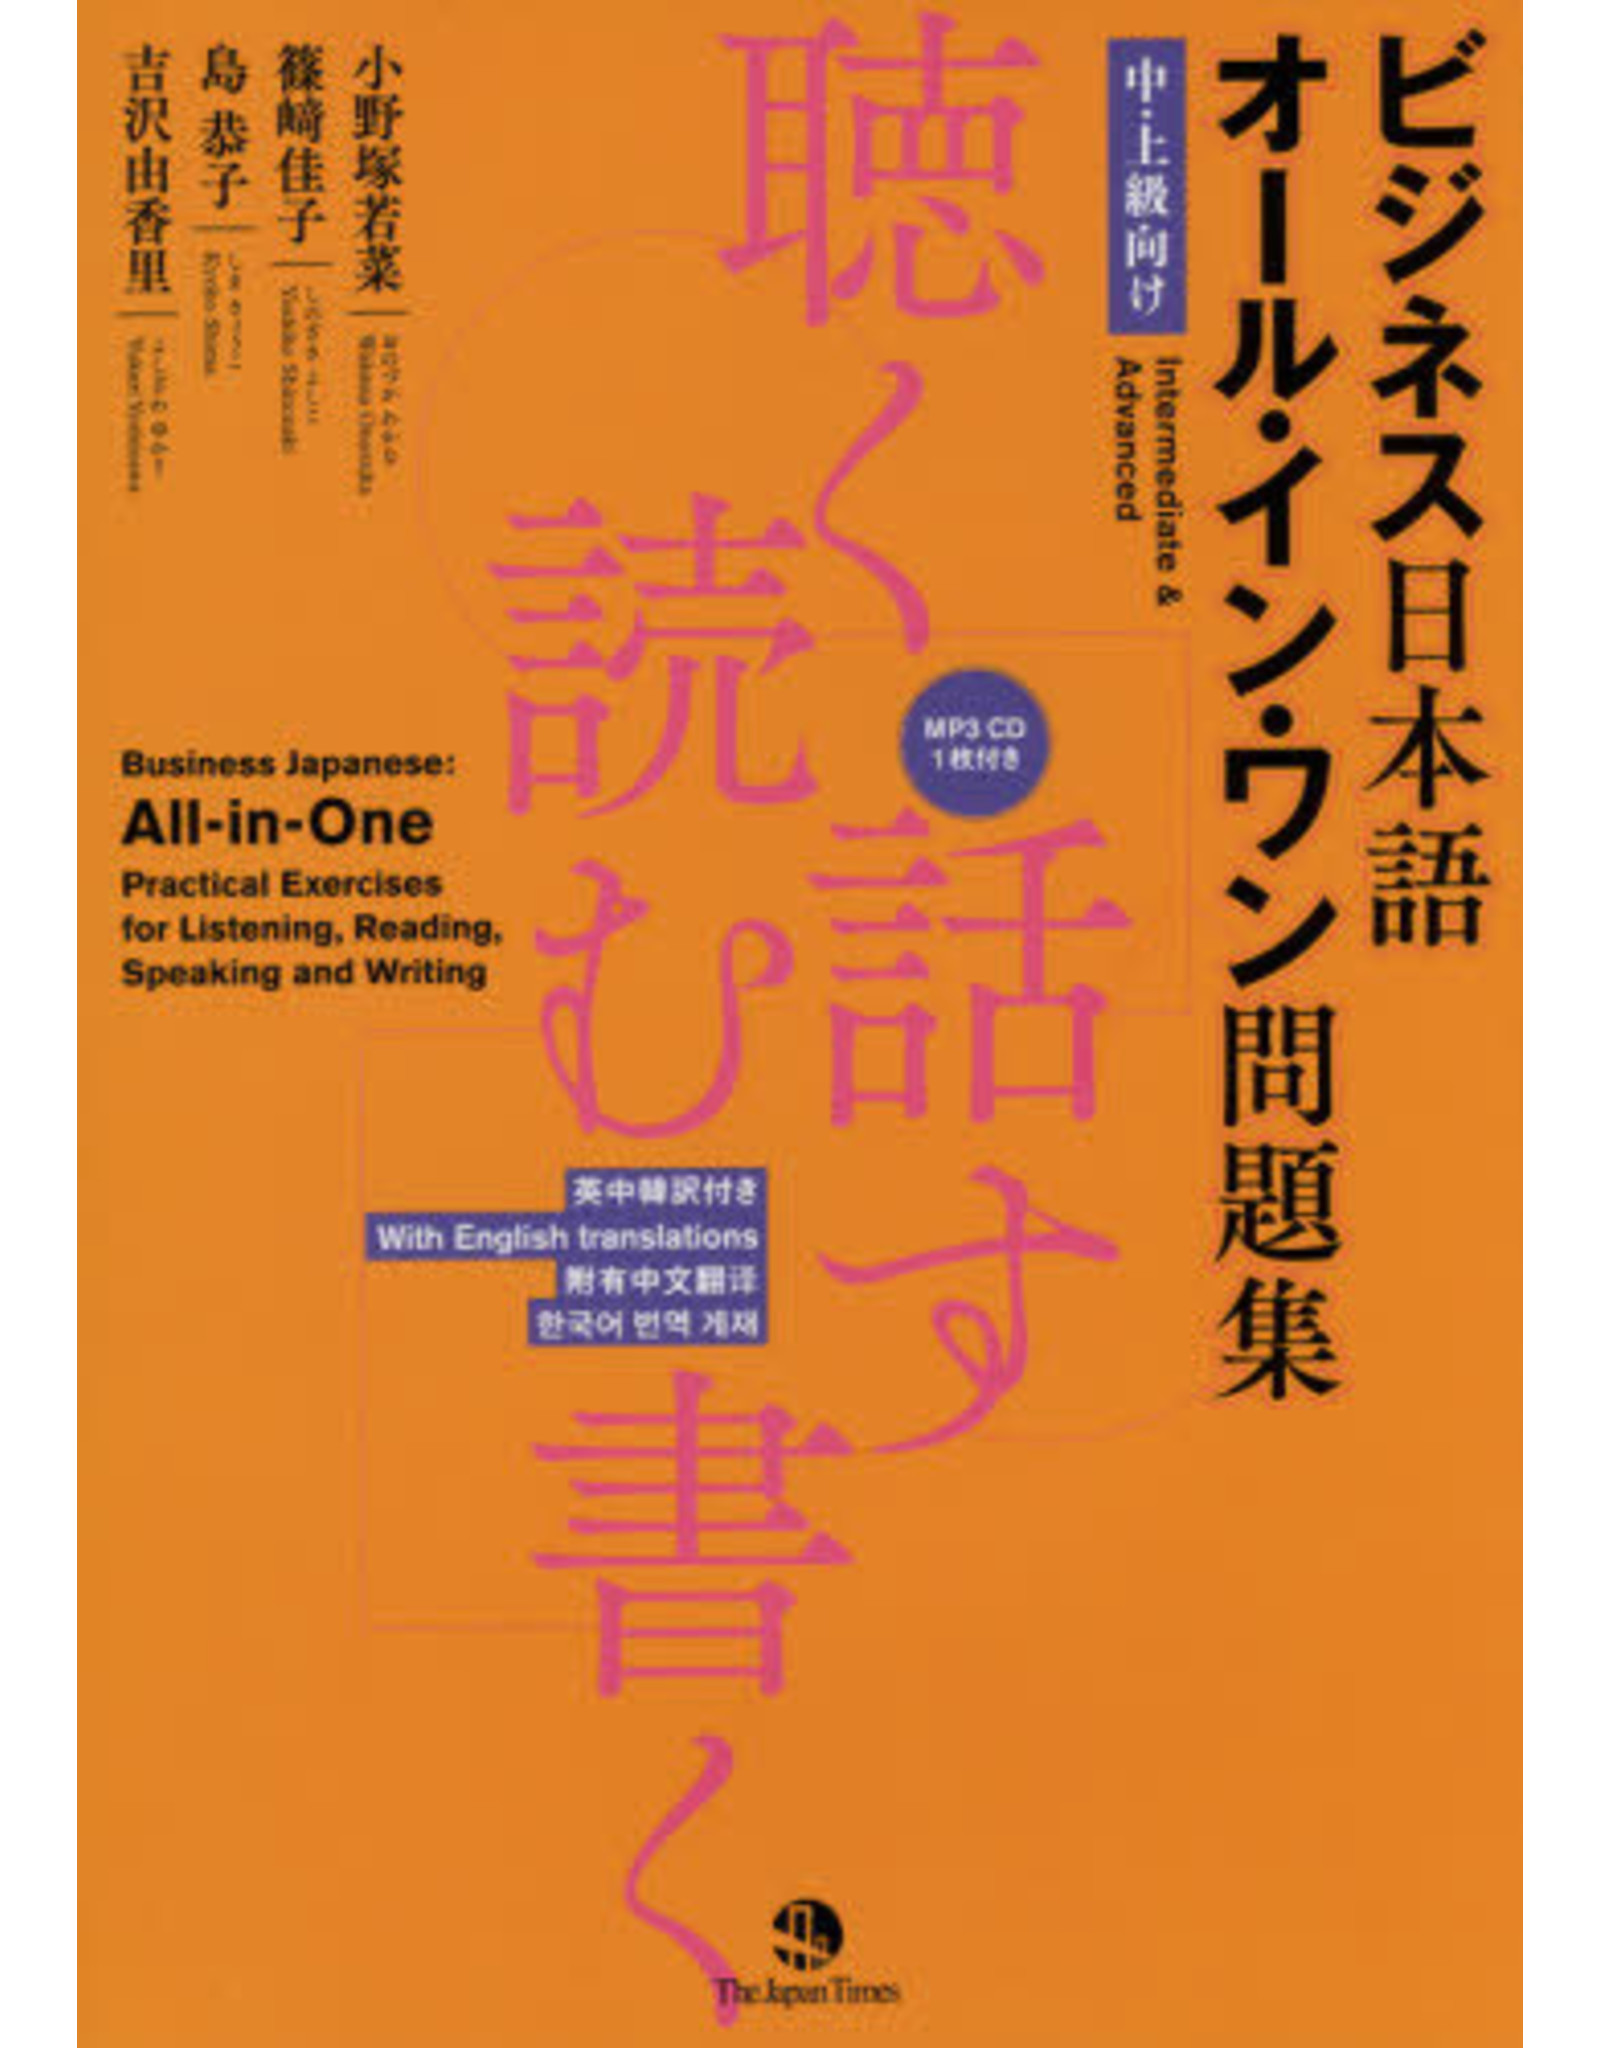 JAPAN TIMES BUSINESS JAPANESE: ALL-IN-ONE PRACTICAL EXERCISES FOR LISTENING, READING , SPEAKING AND WRITING